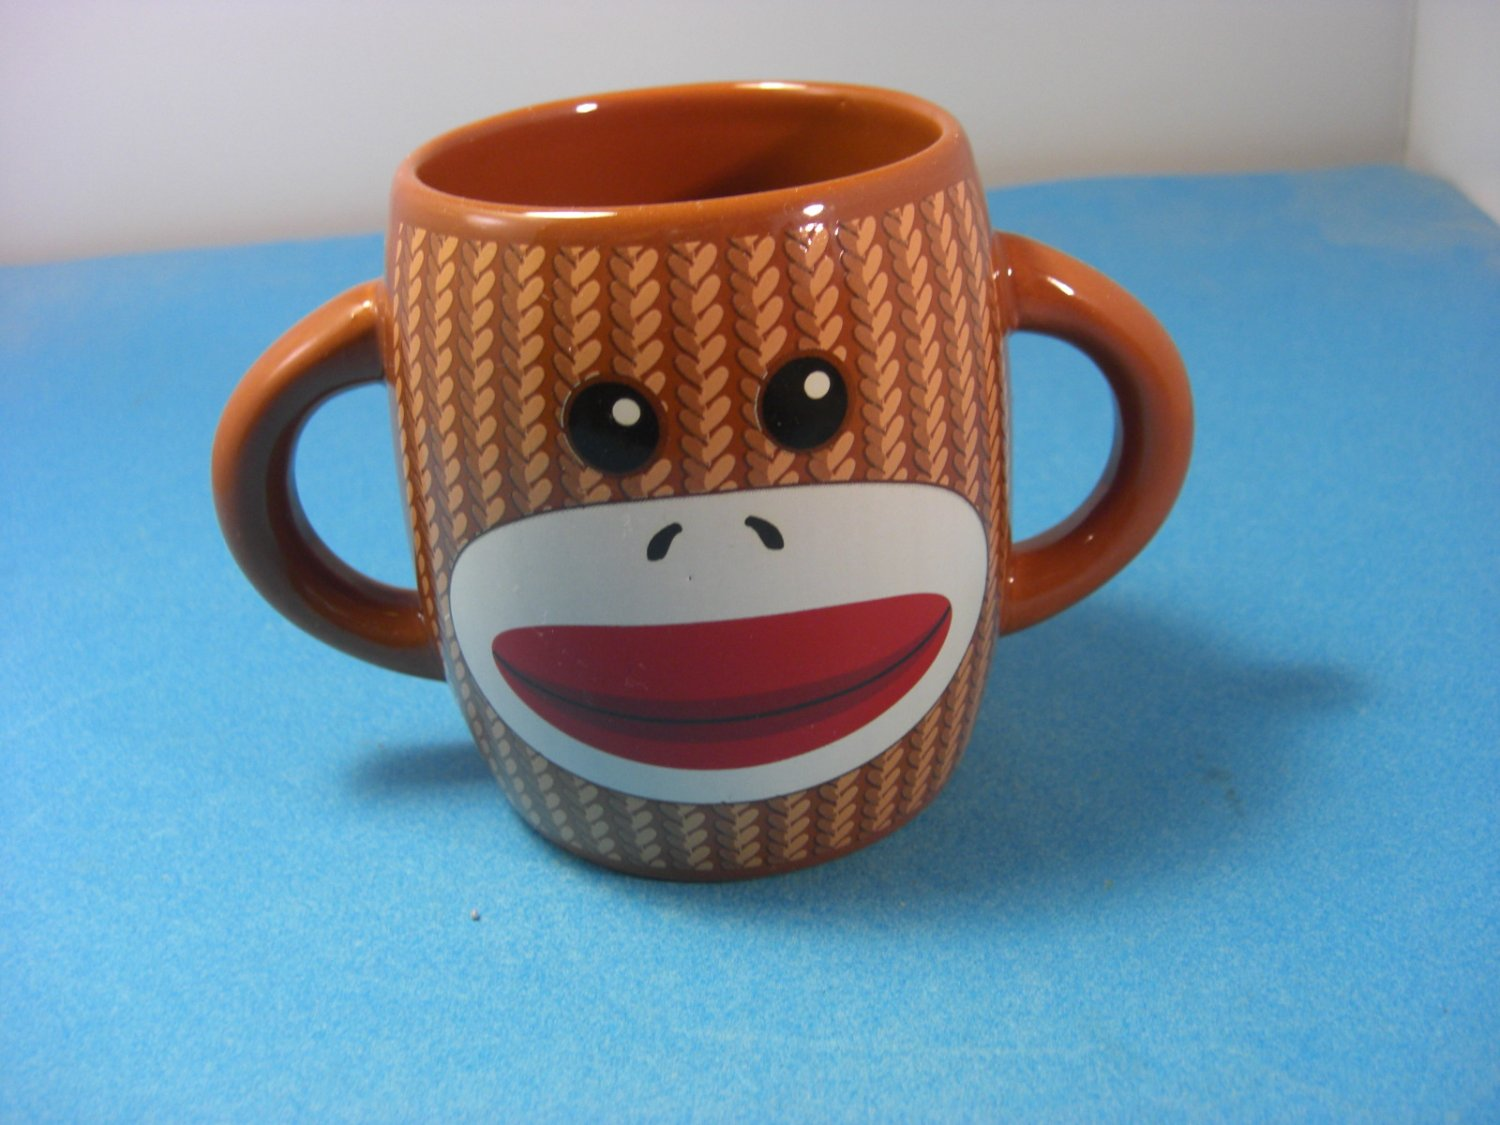 Double Handled Coffee Mugs Sock Monkey Double Handle Galerie Ceramic Mug Barrel Shaped